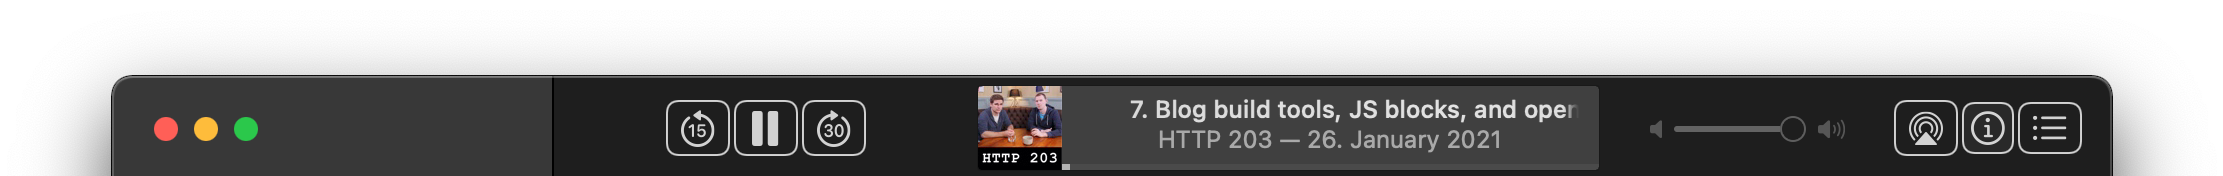 macOS Podcasts app title bar showing media control buttons and metadata about the currently playing podcast.